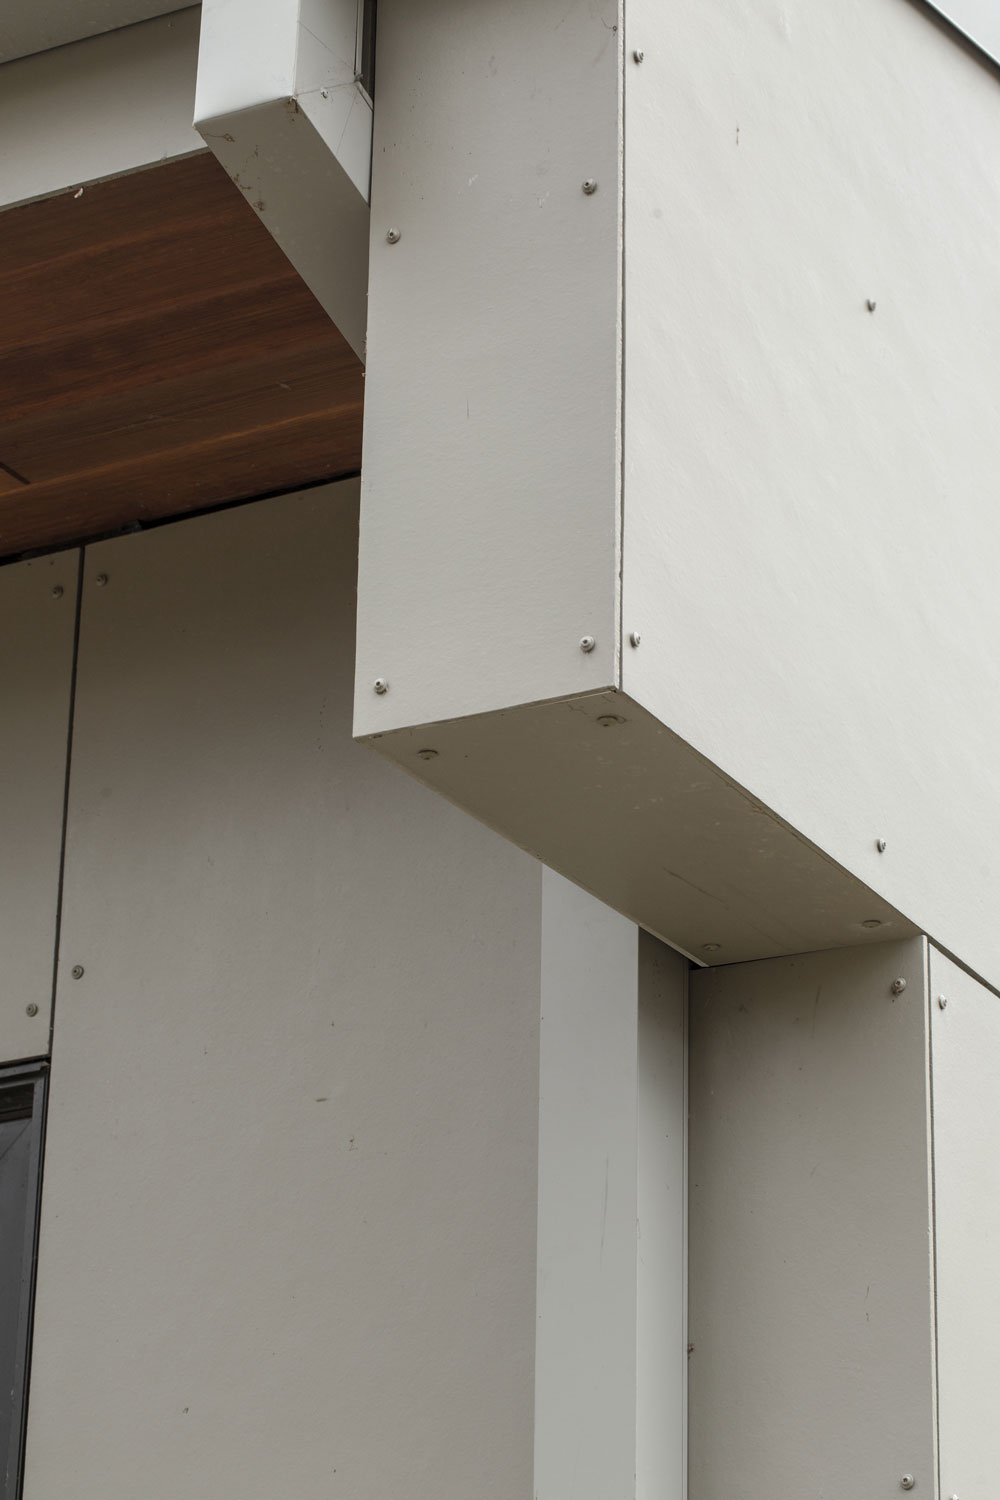 Unit 7 Architecture | Residential - Winnipeg Beach Summer Home - CORNER DETAIL